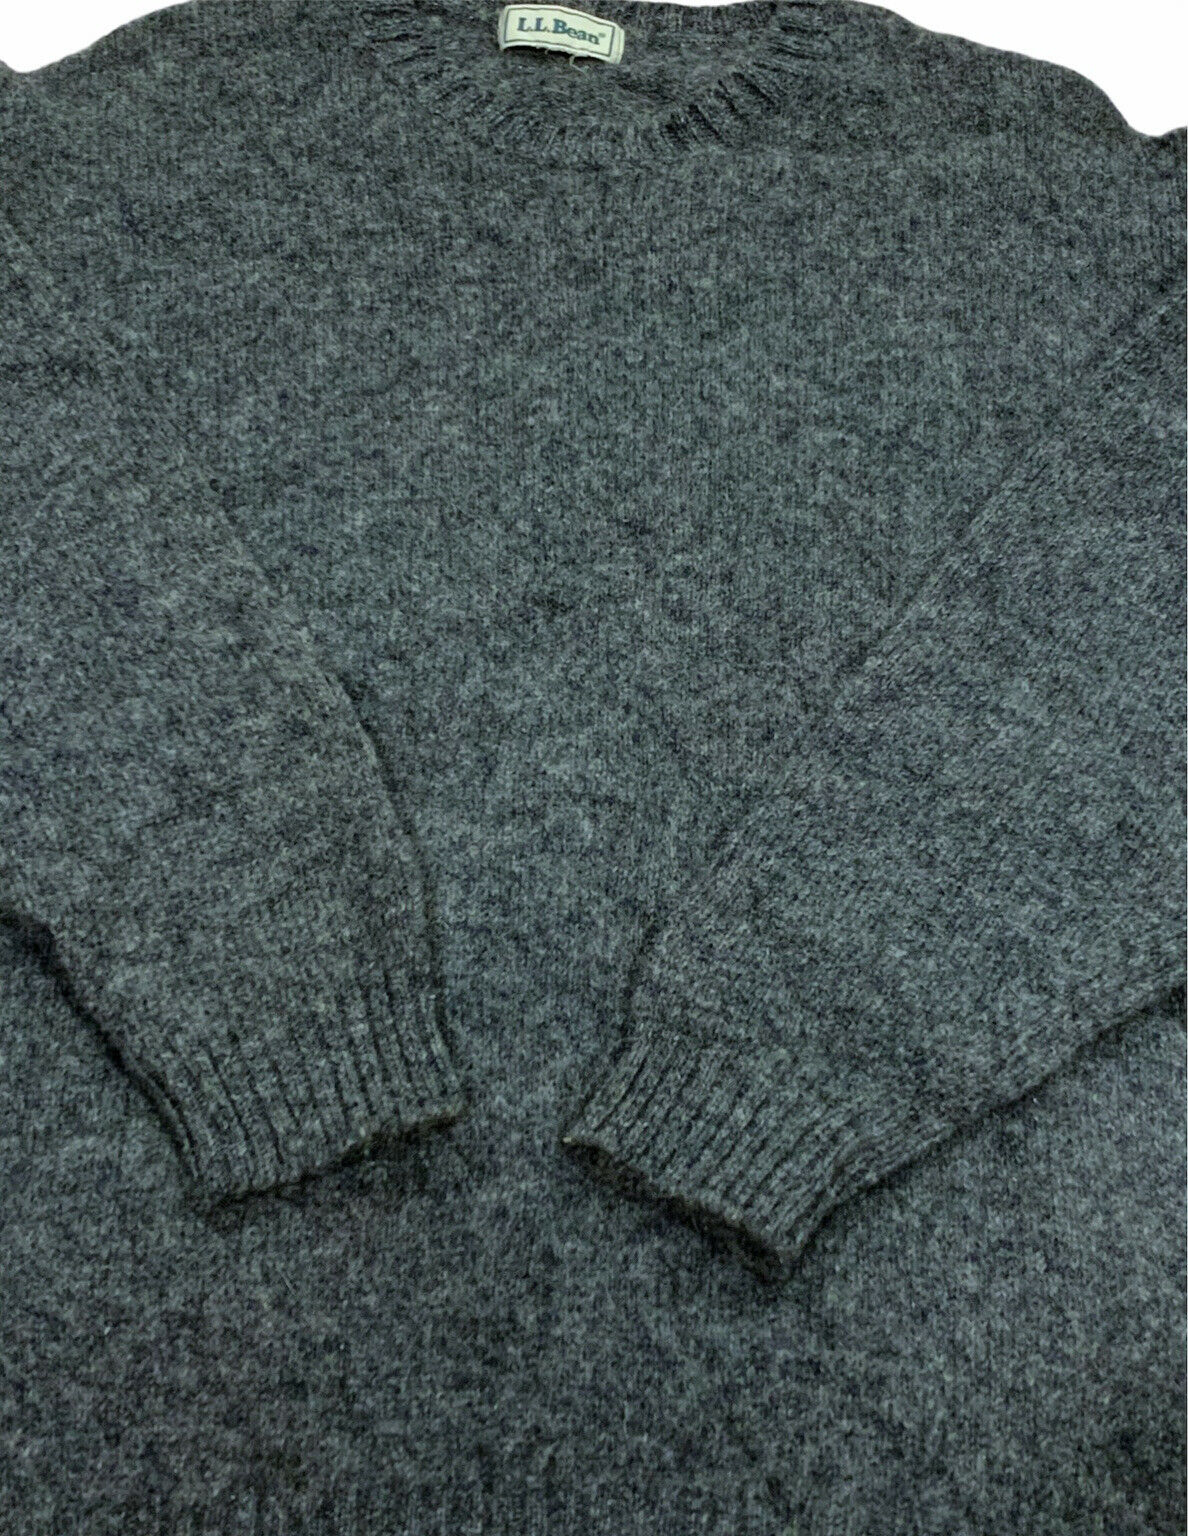 Vintage 80s LL Bean Gray Wool Knit Pullover Crewn… - image 4